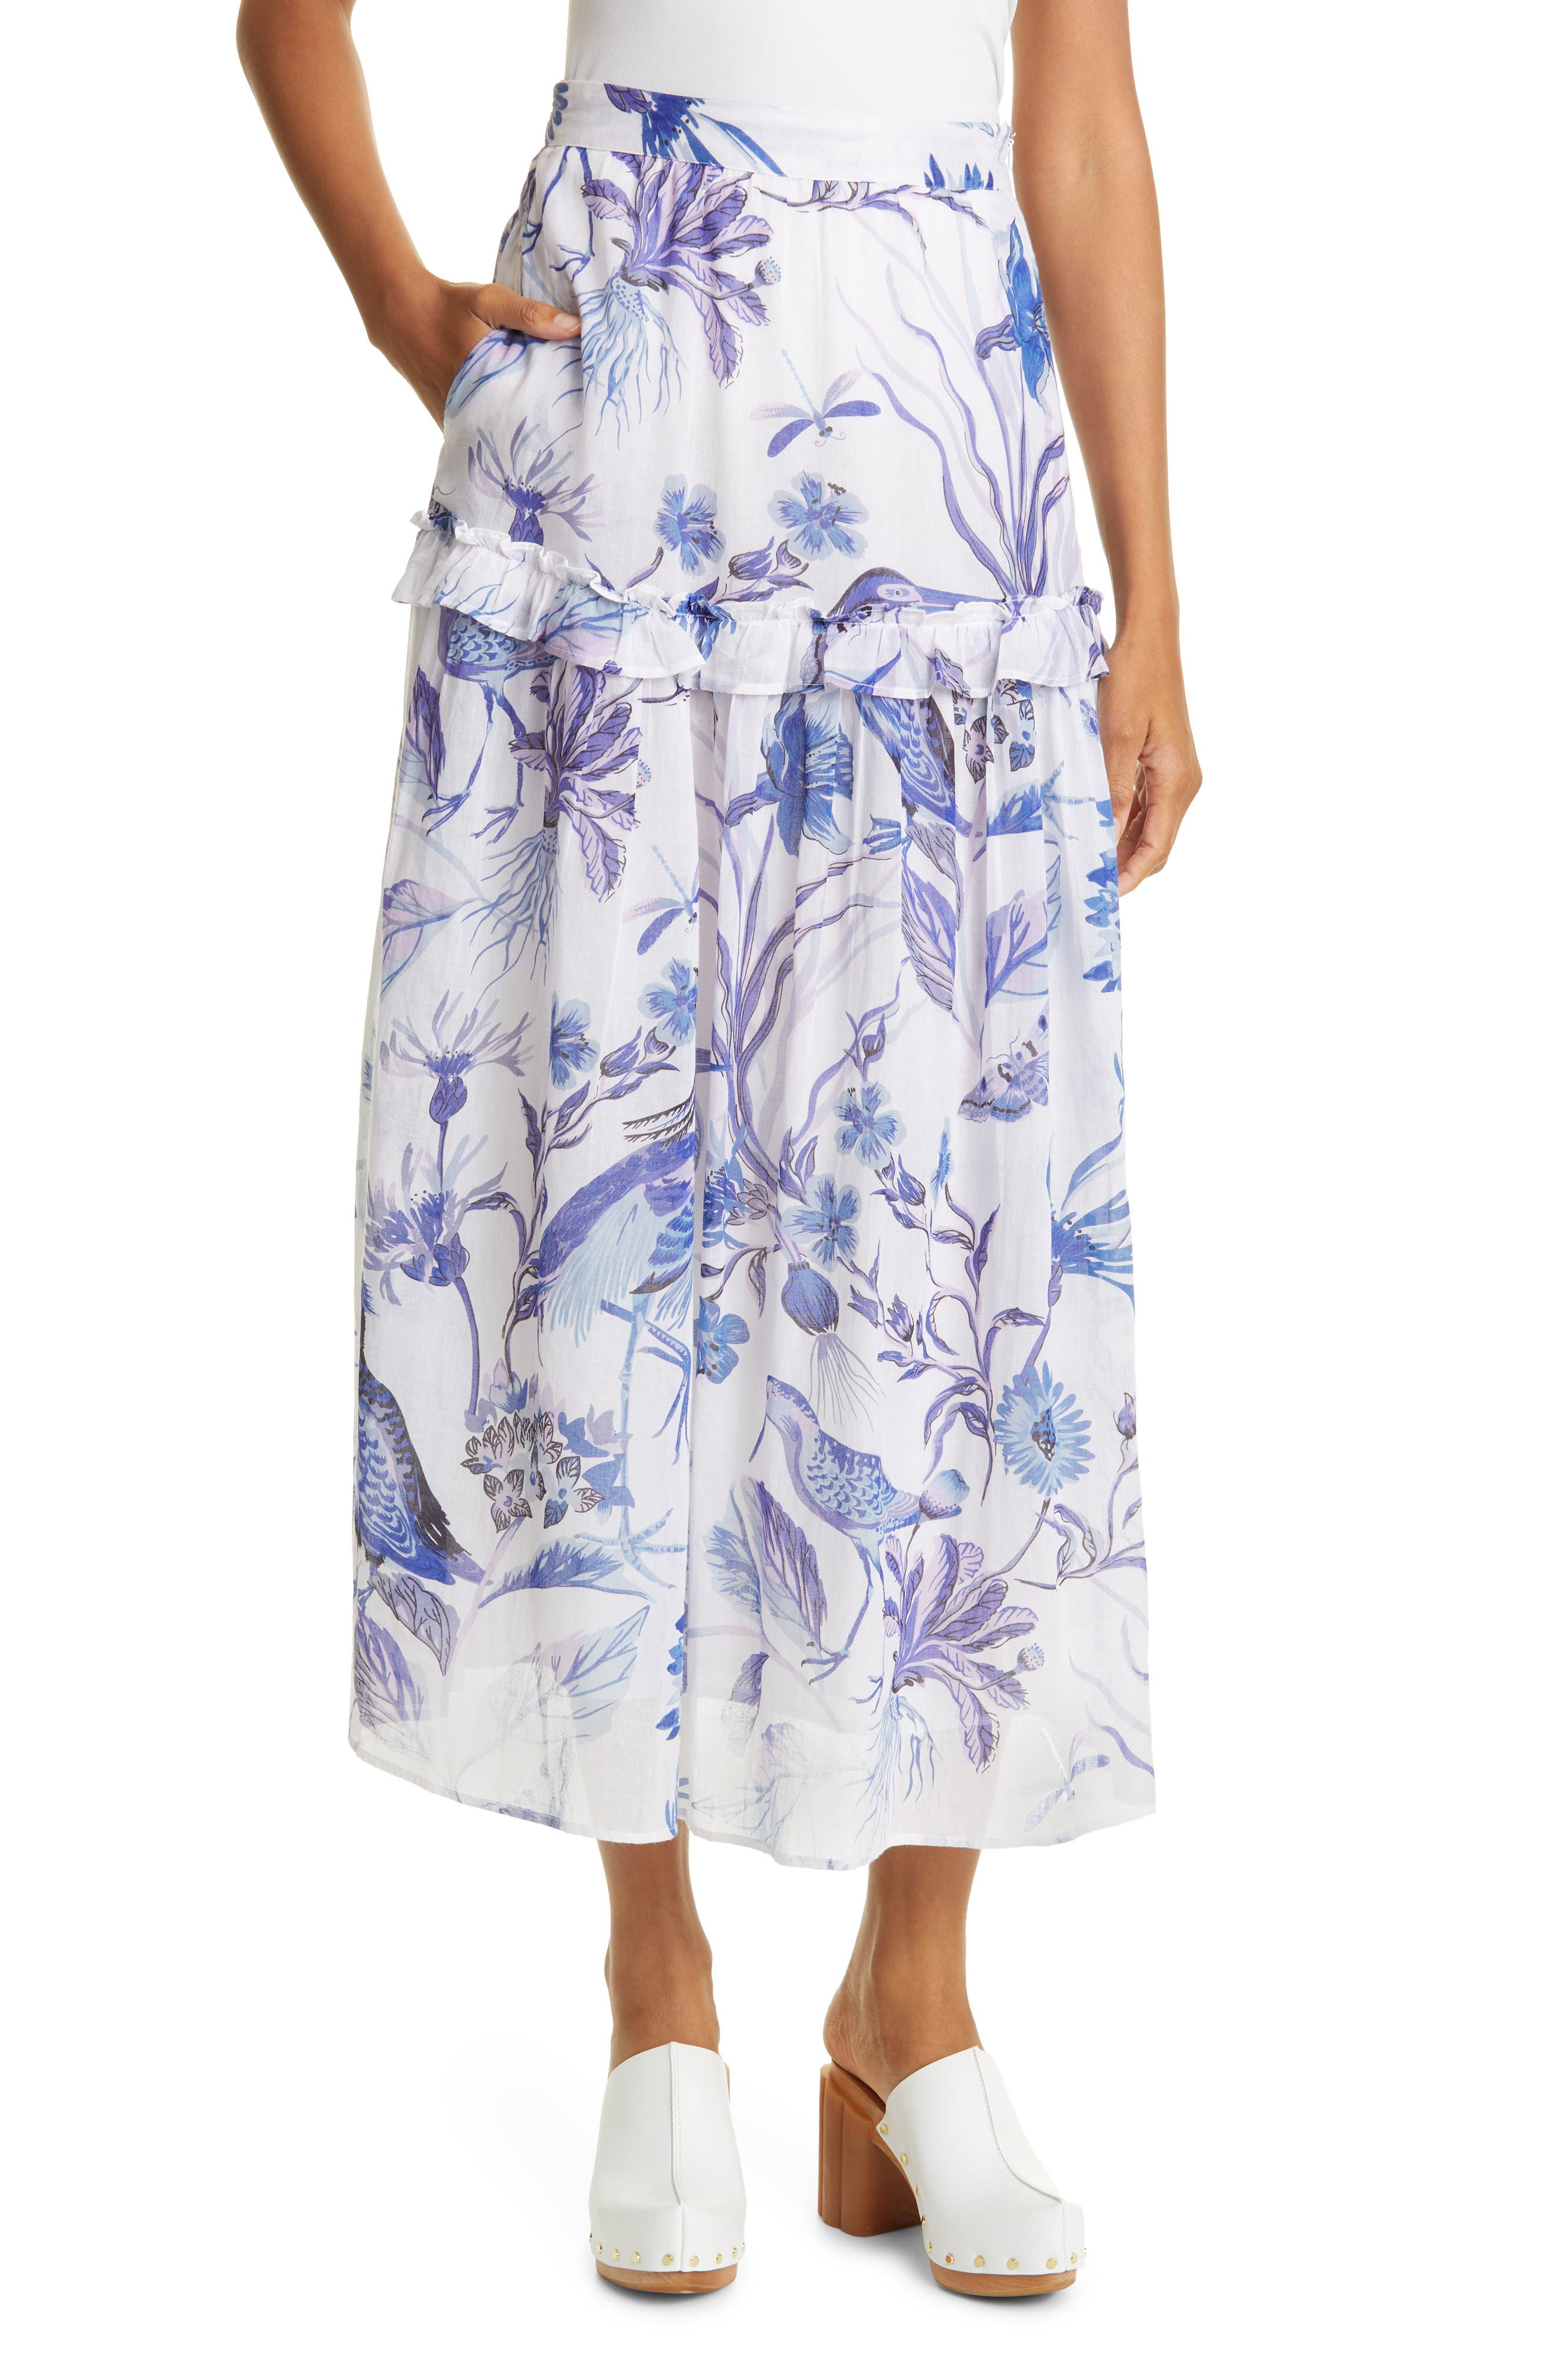 Piper Floral Skirt